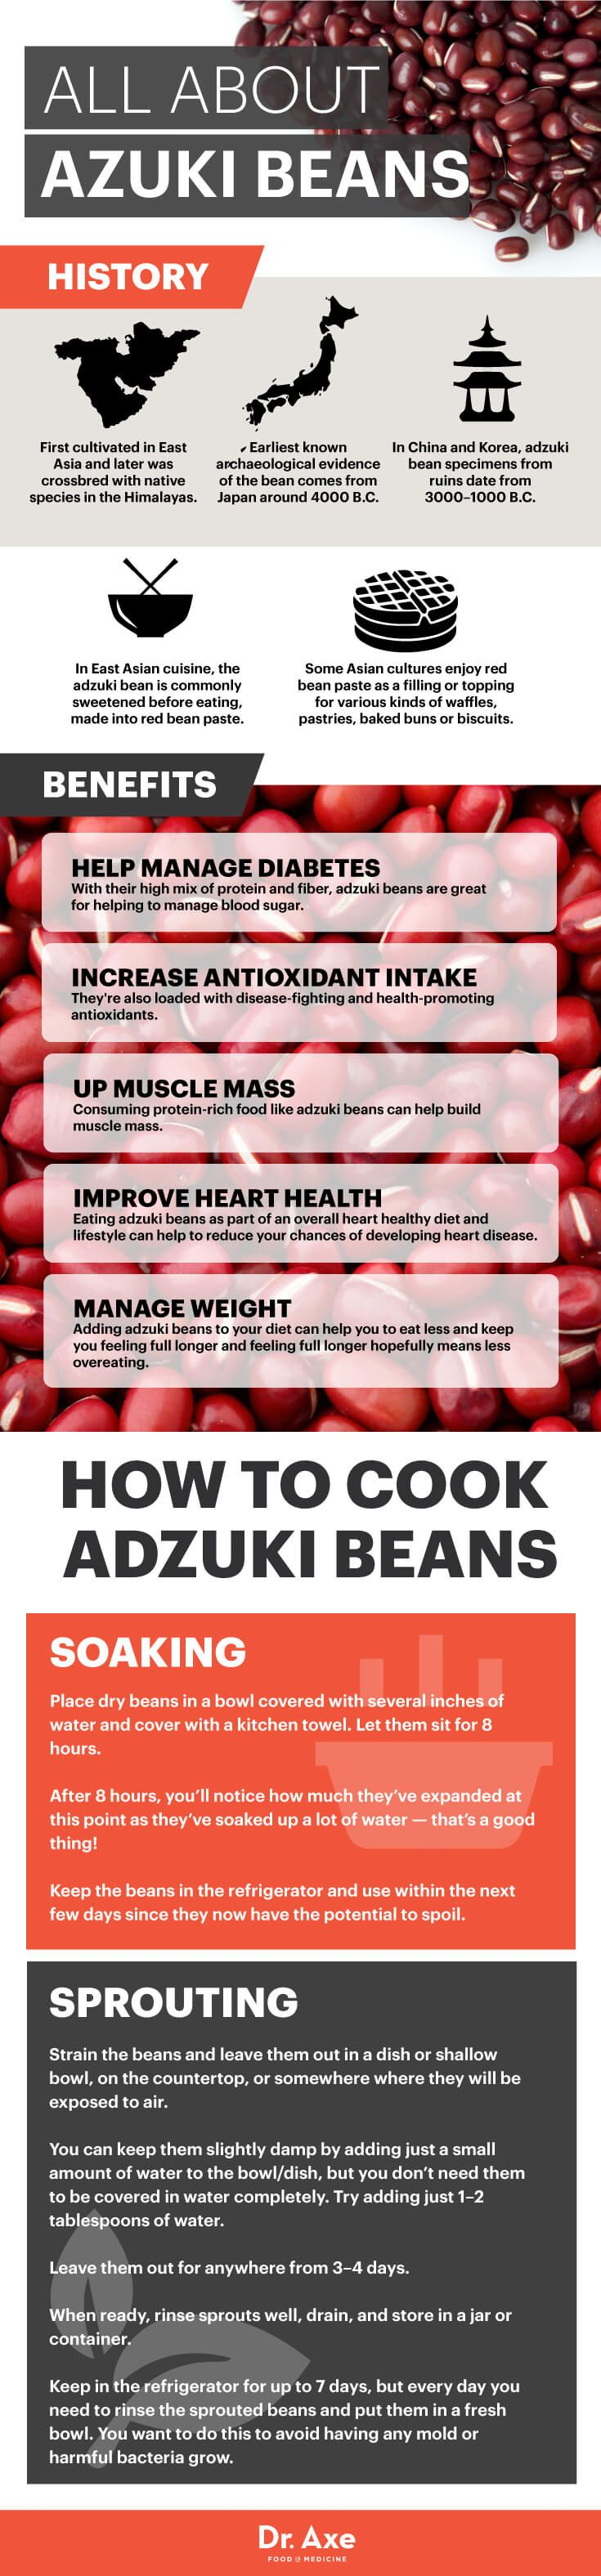 All about adzuki beans - Dr. Axe http://www.draxe.com #health #holistic #natural